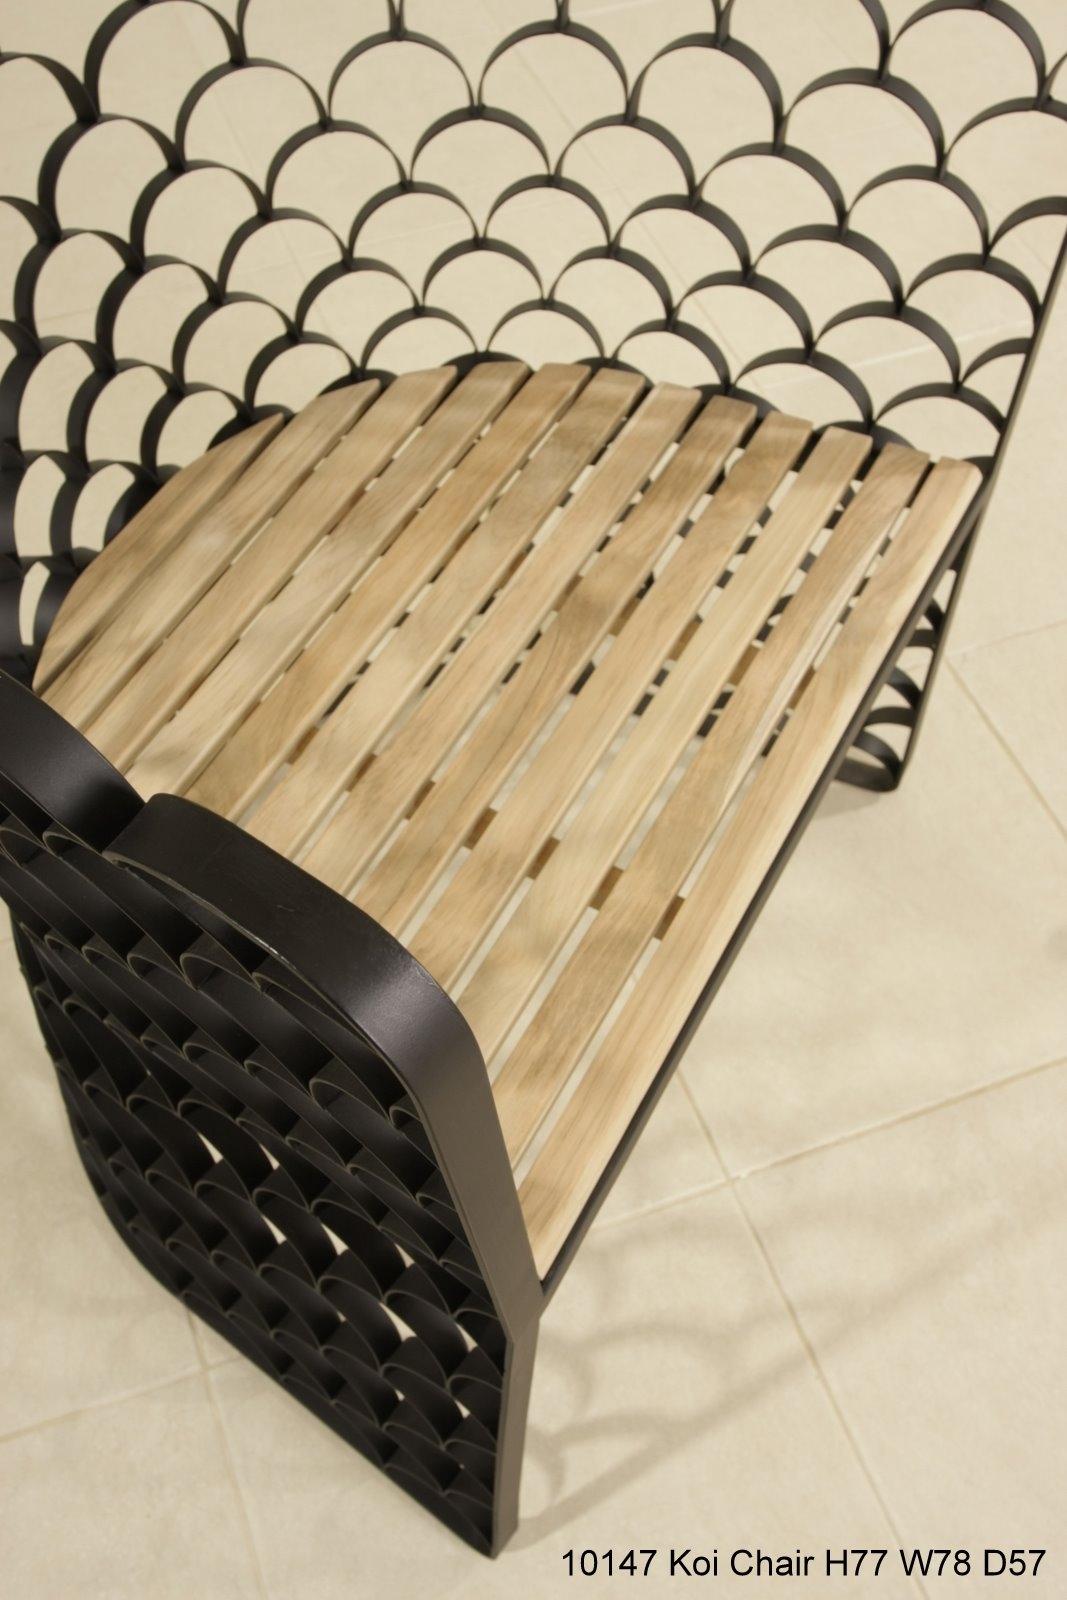 Koi chair_10.jpg